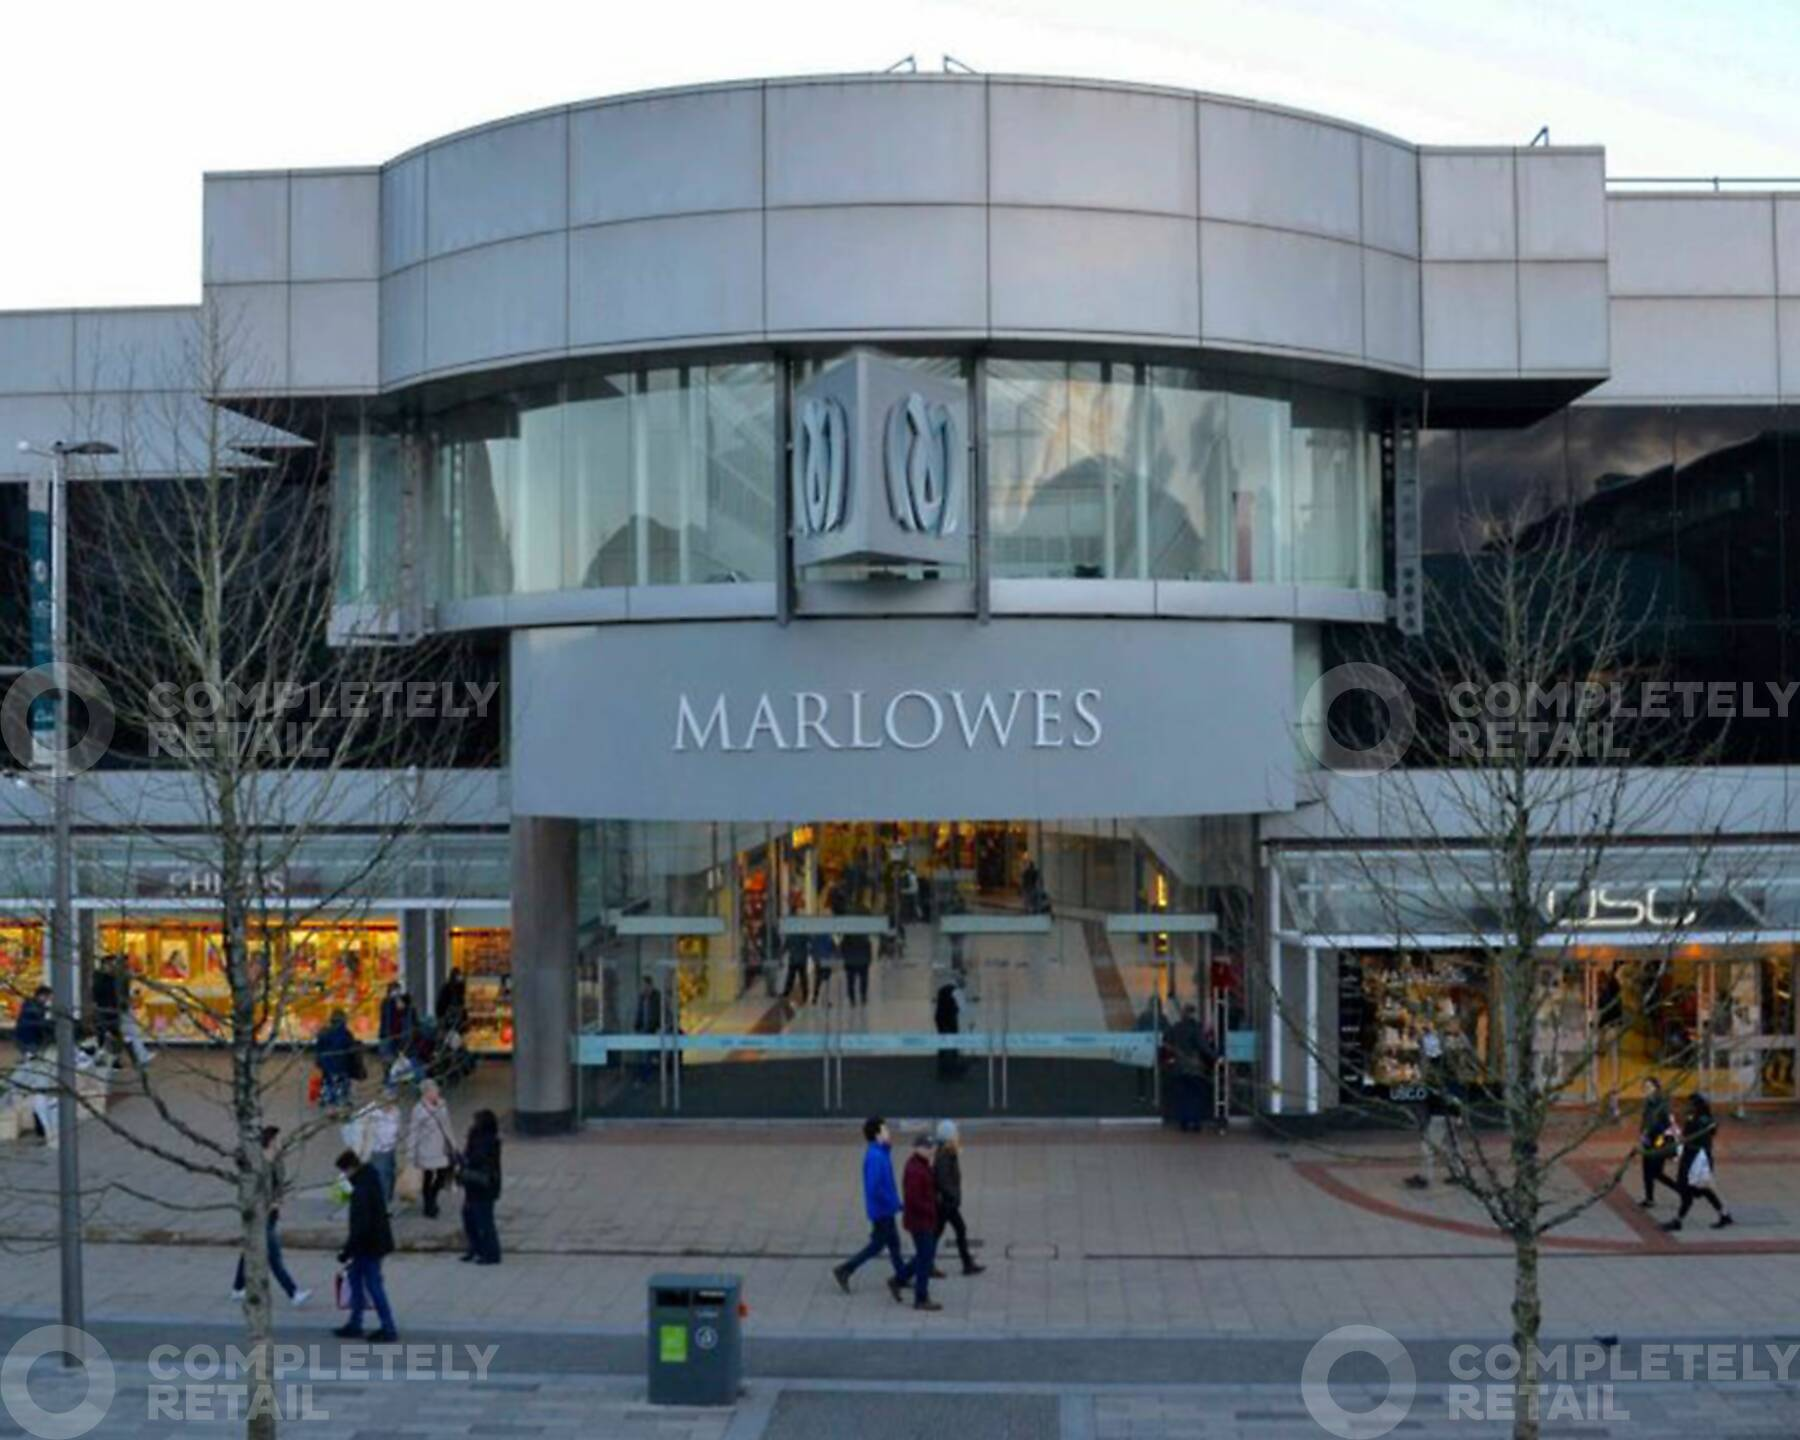 Marlowes Shopping Centre